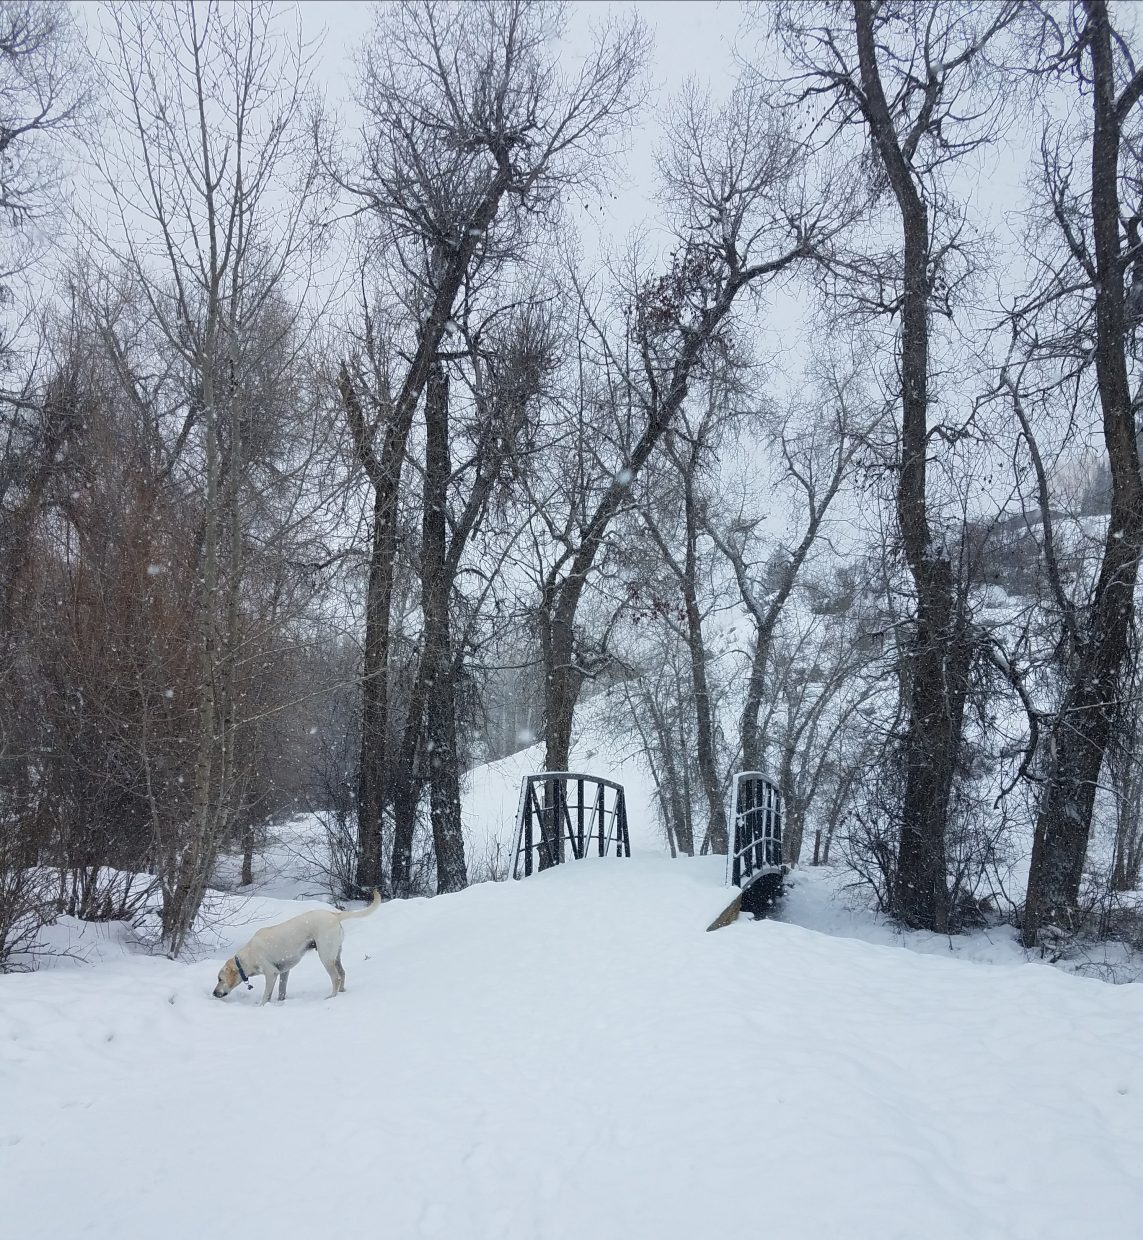 Hoover, the dog, enjoys the snow in Steamboat Springs.